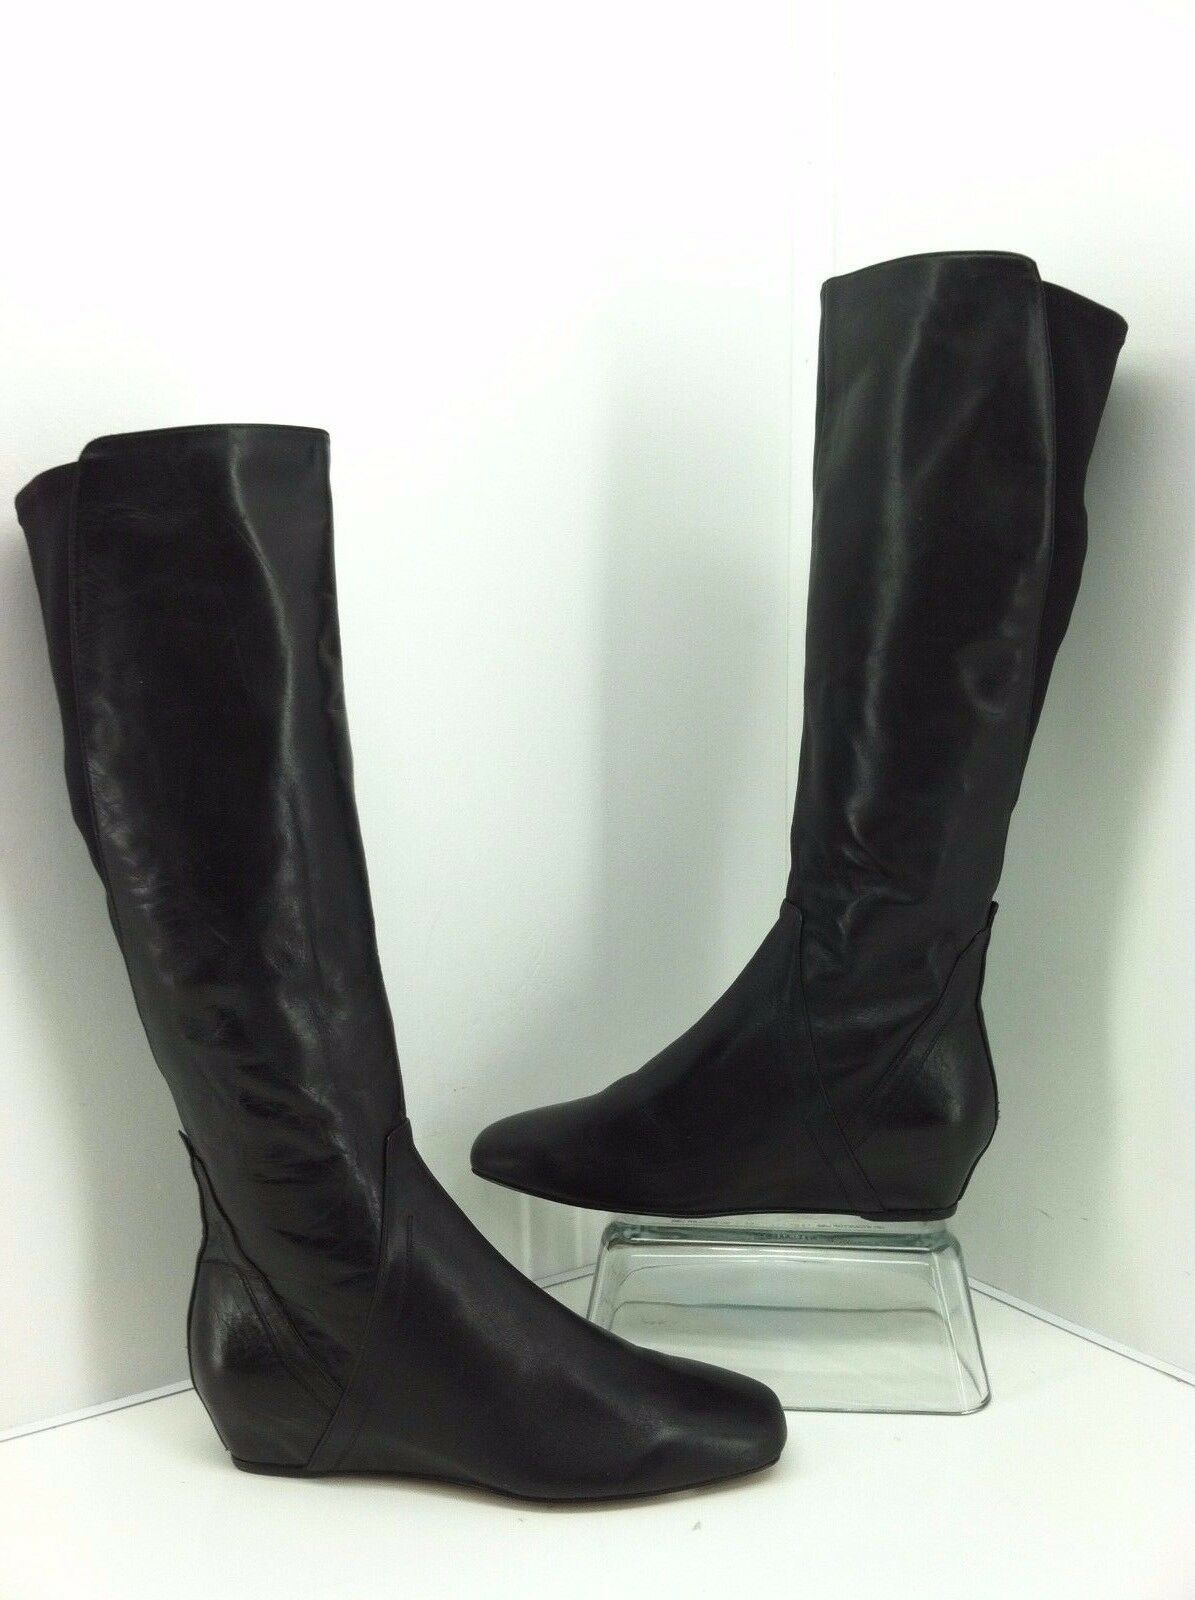 DONALD J PLINER Patrice Boots Size 7.5 M  Knee High Wedge Black